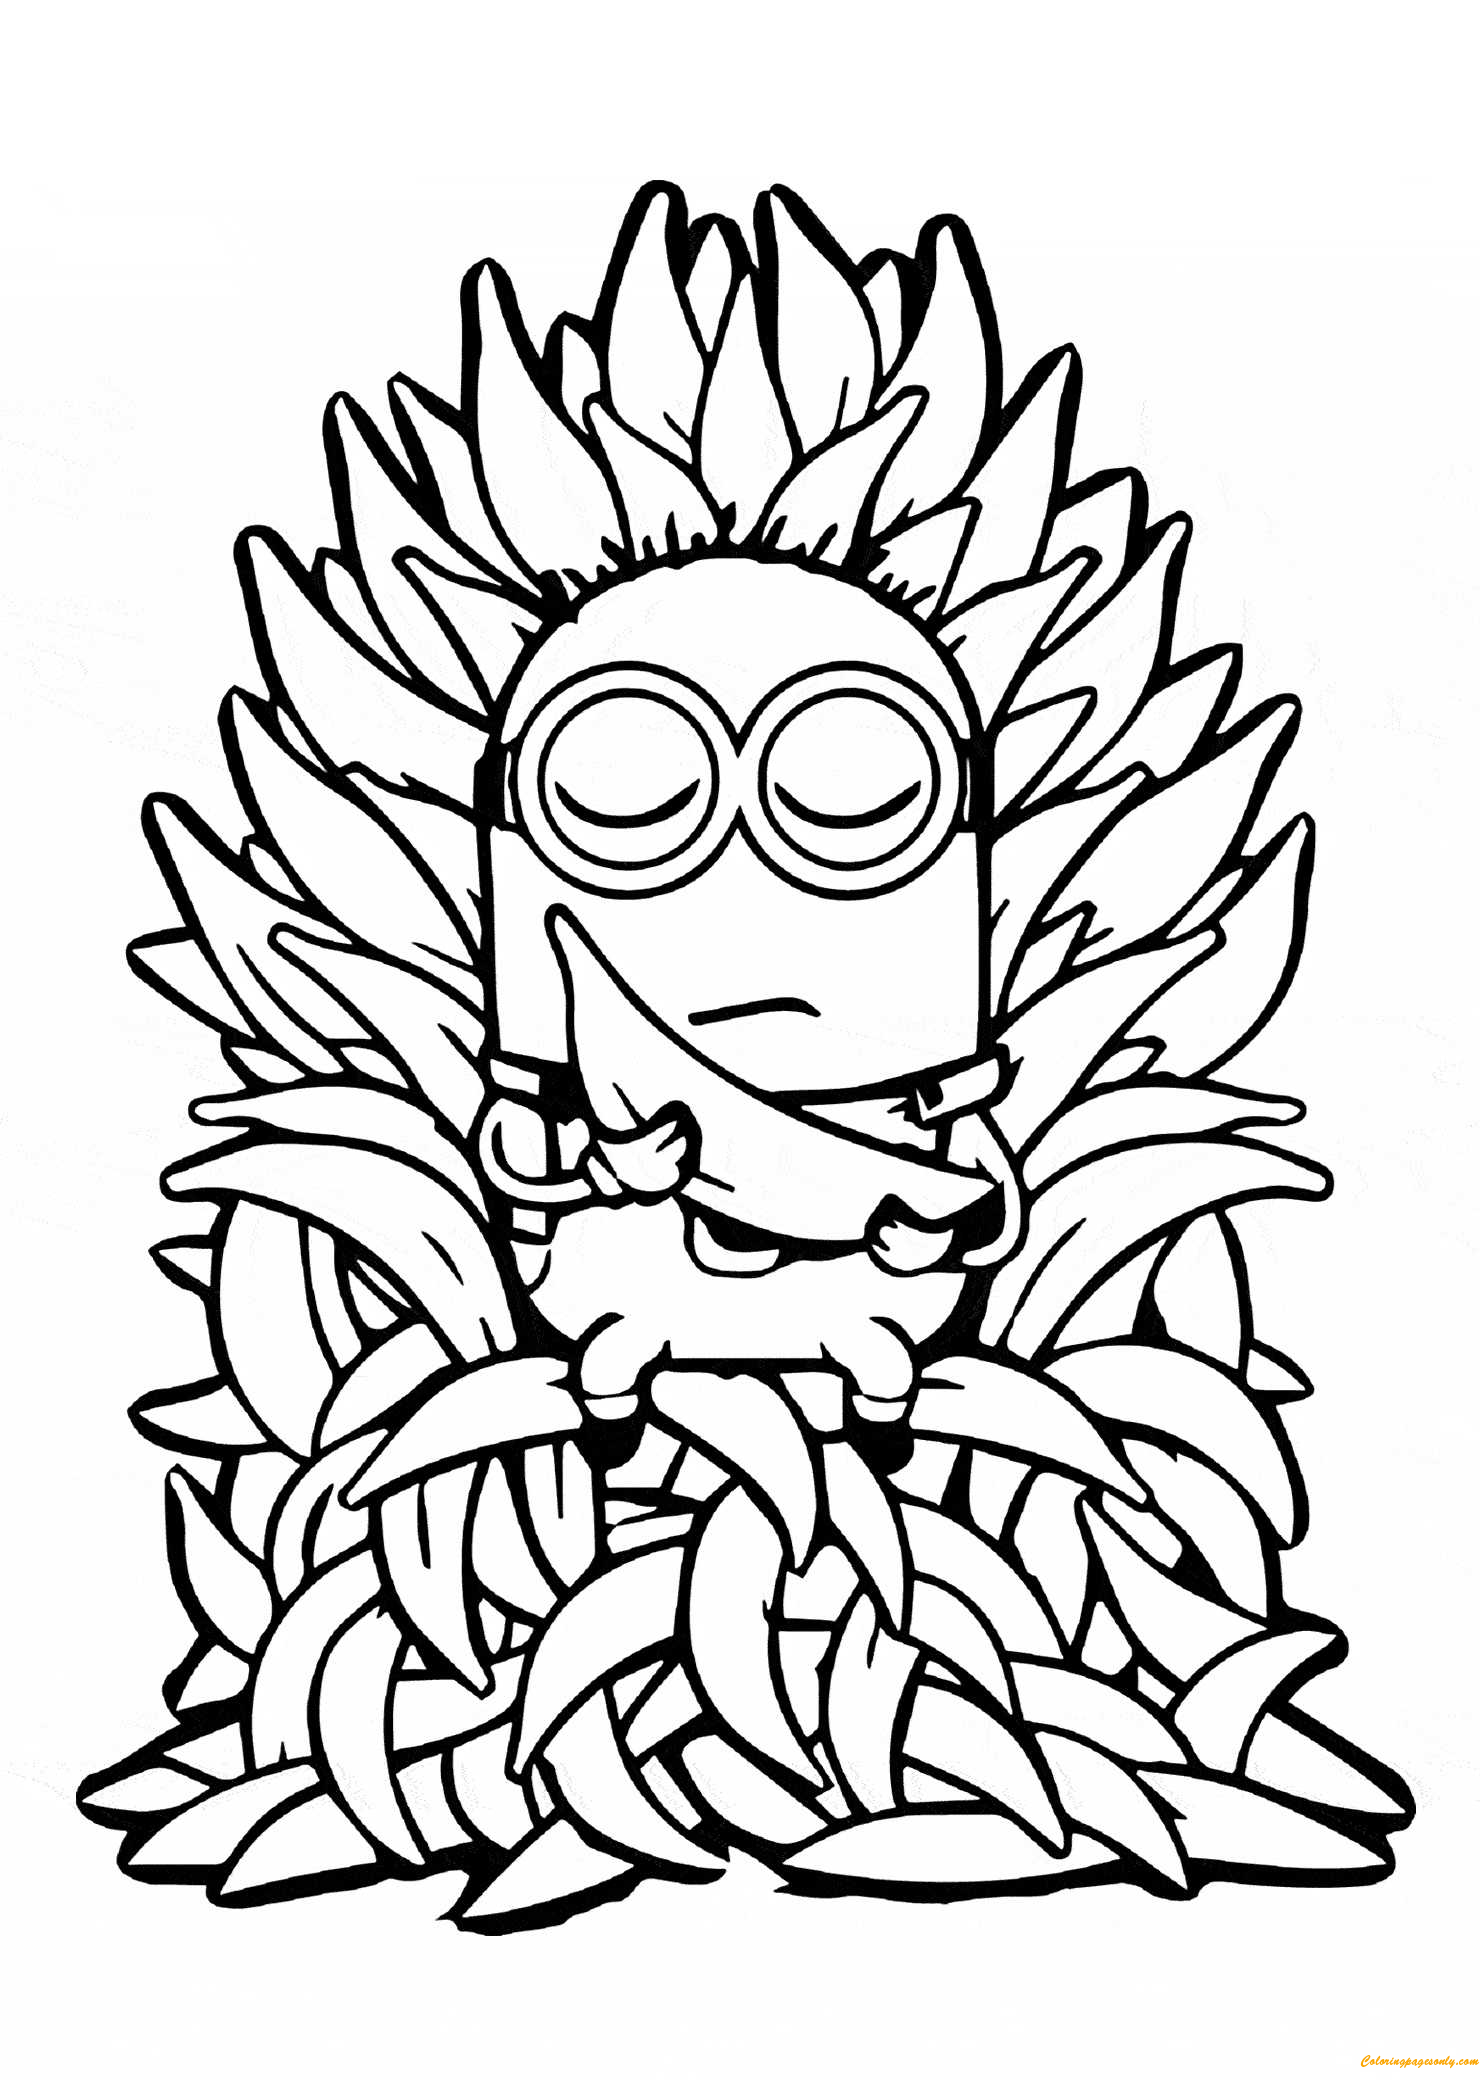 Minion and Many Bananas Coloring